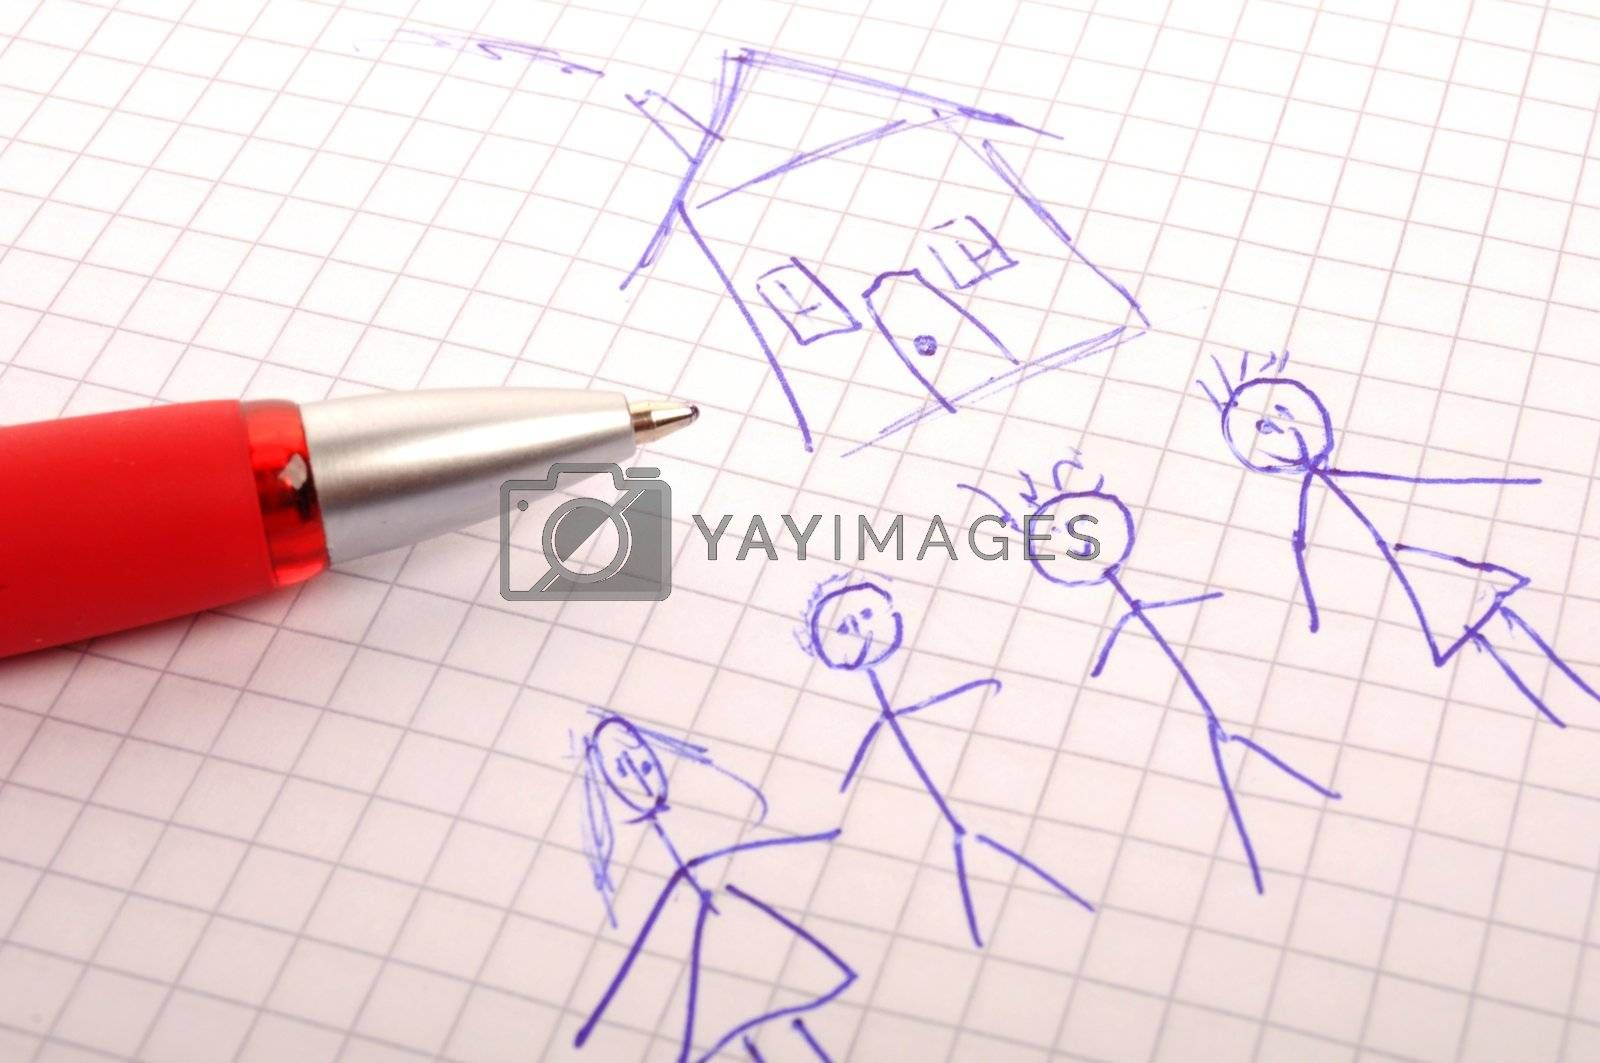 Royalty free image of real estate family by gunnar3000